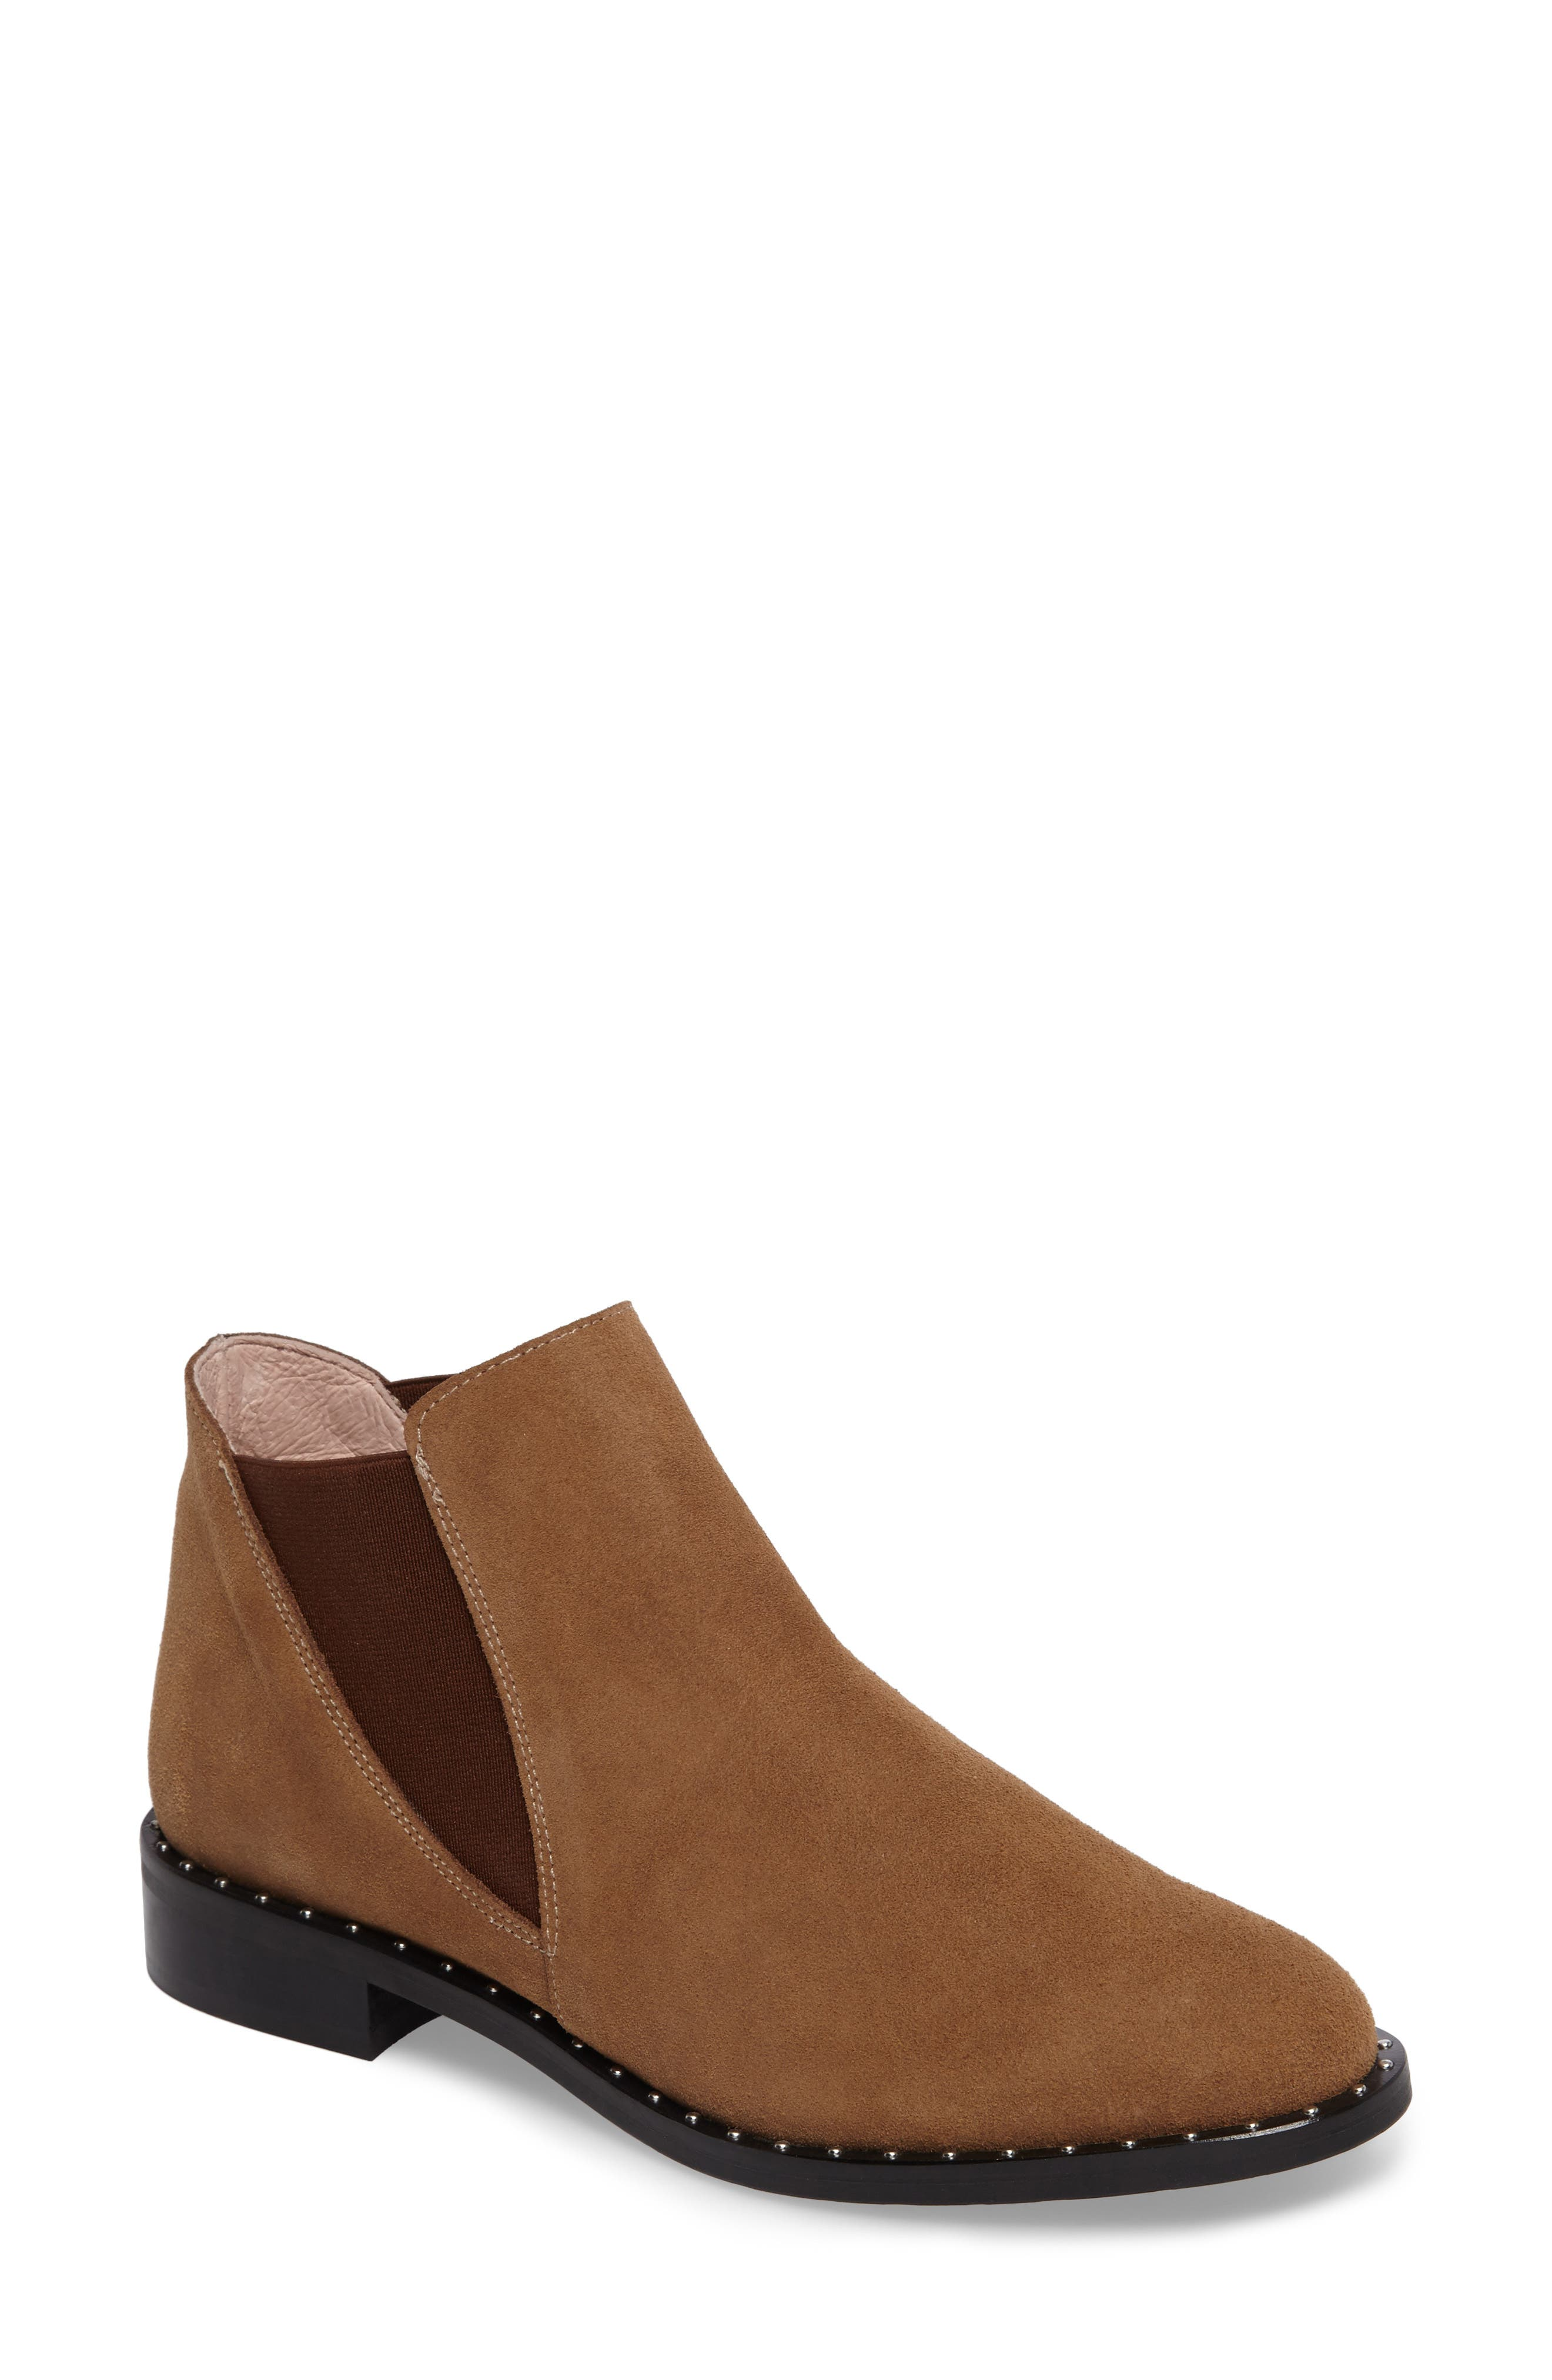 Alternate Image 1 Selected - patricia green Palma Chelsea Boot (Women)